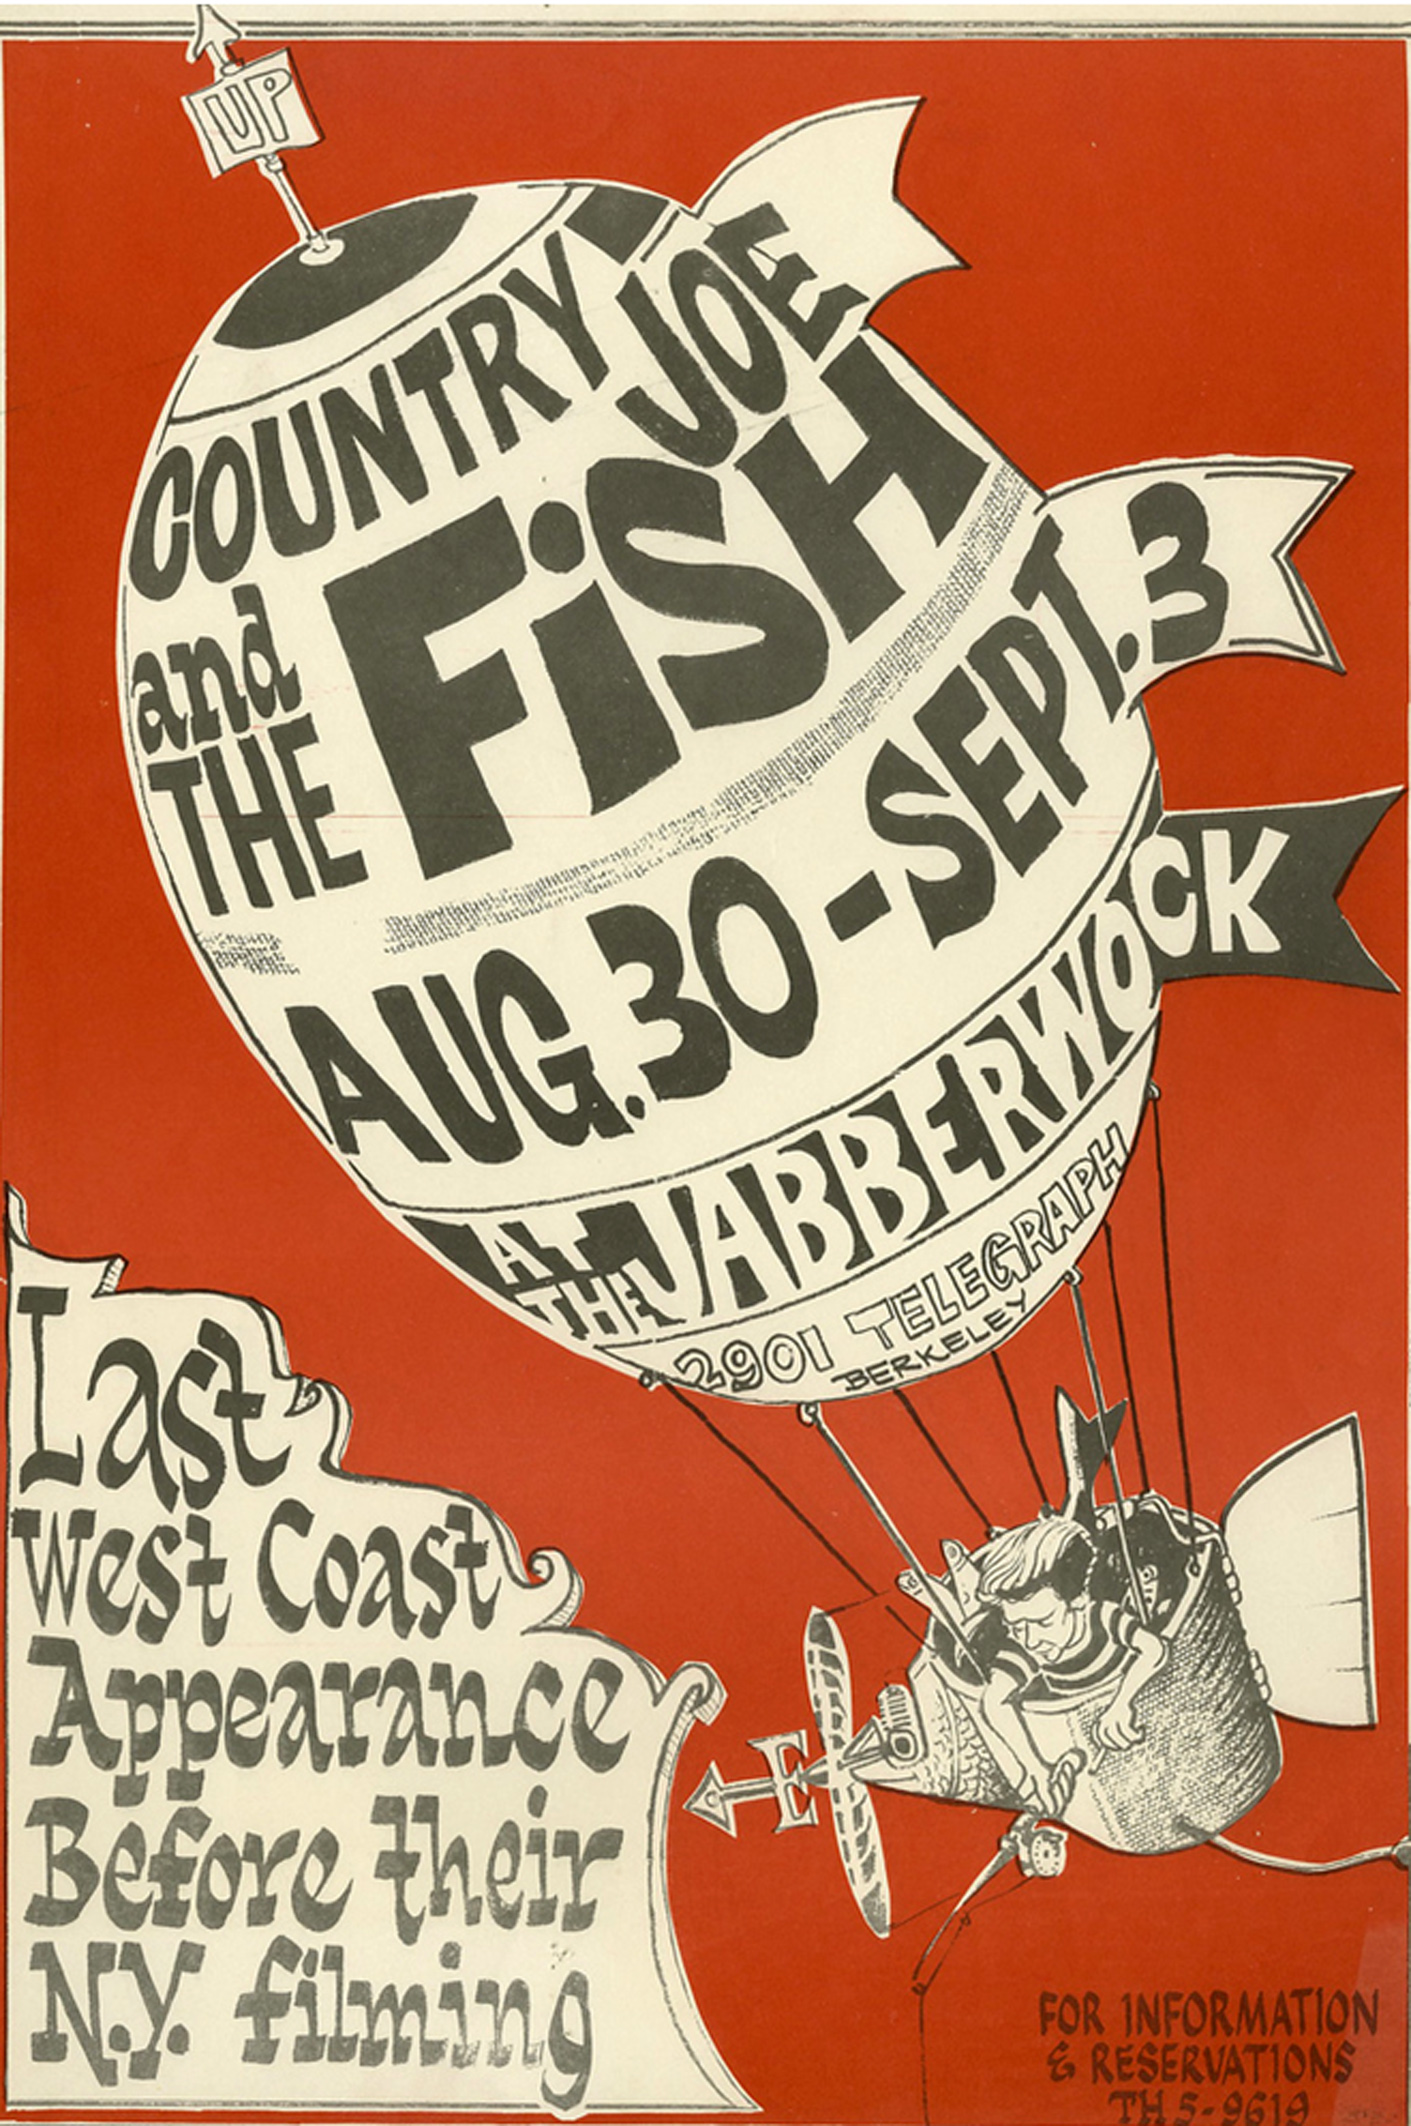 Country Joe and the Fish Jabberwock 1966